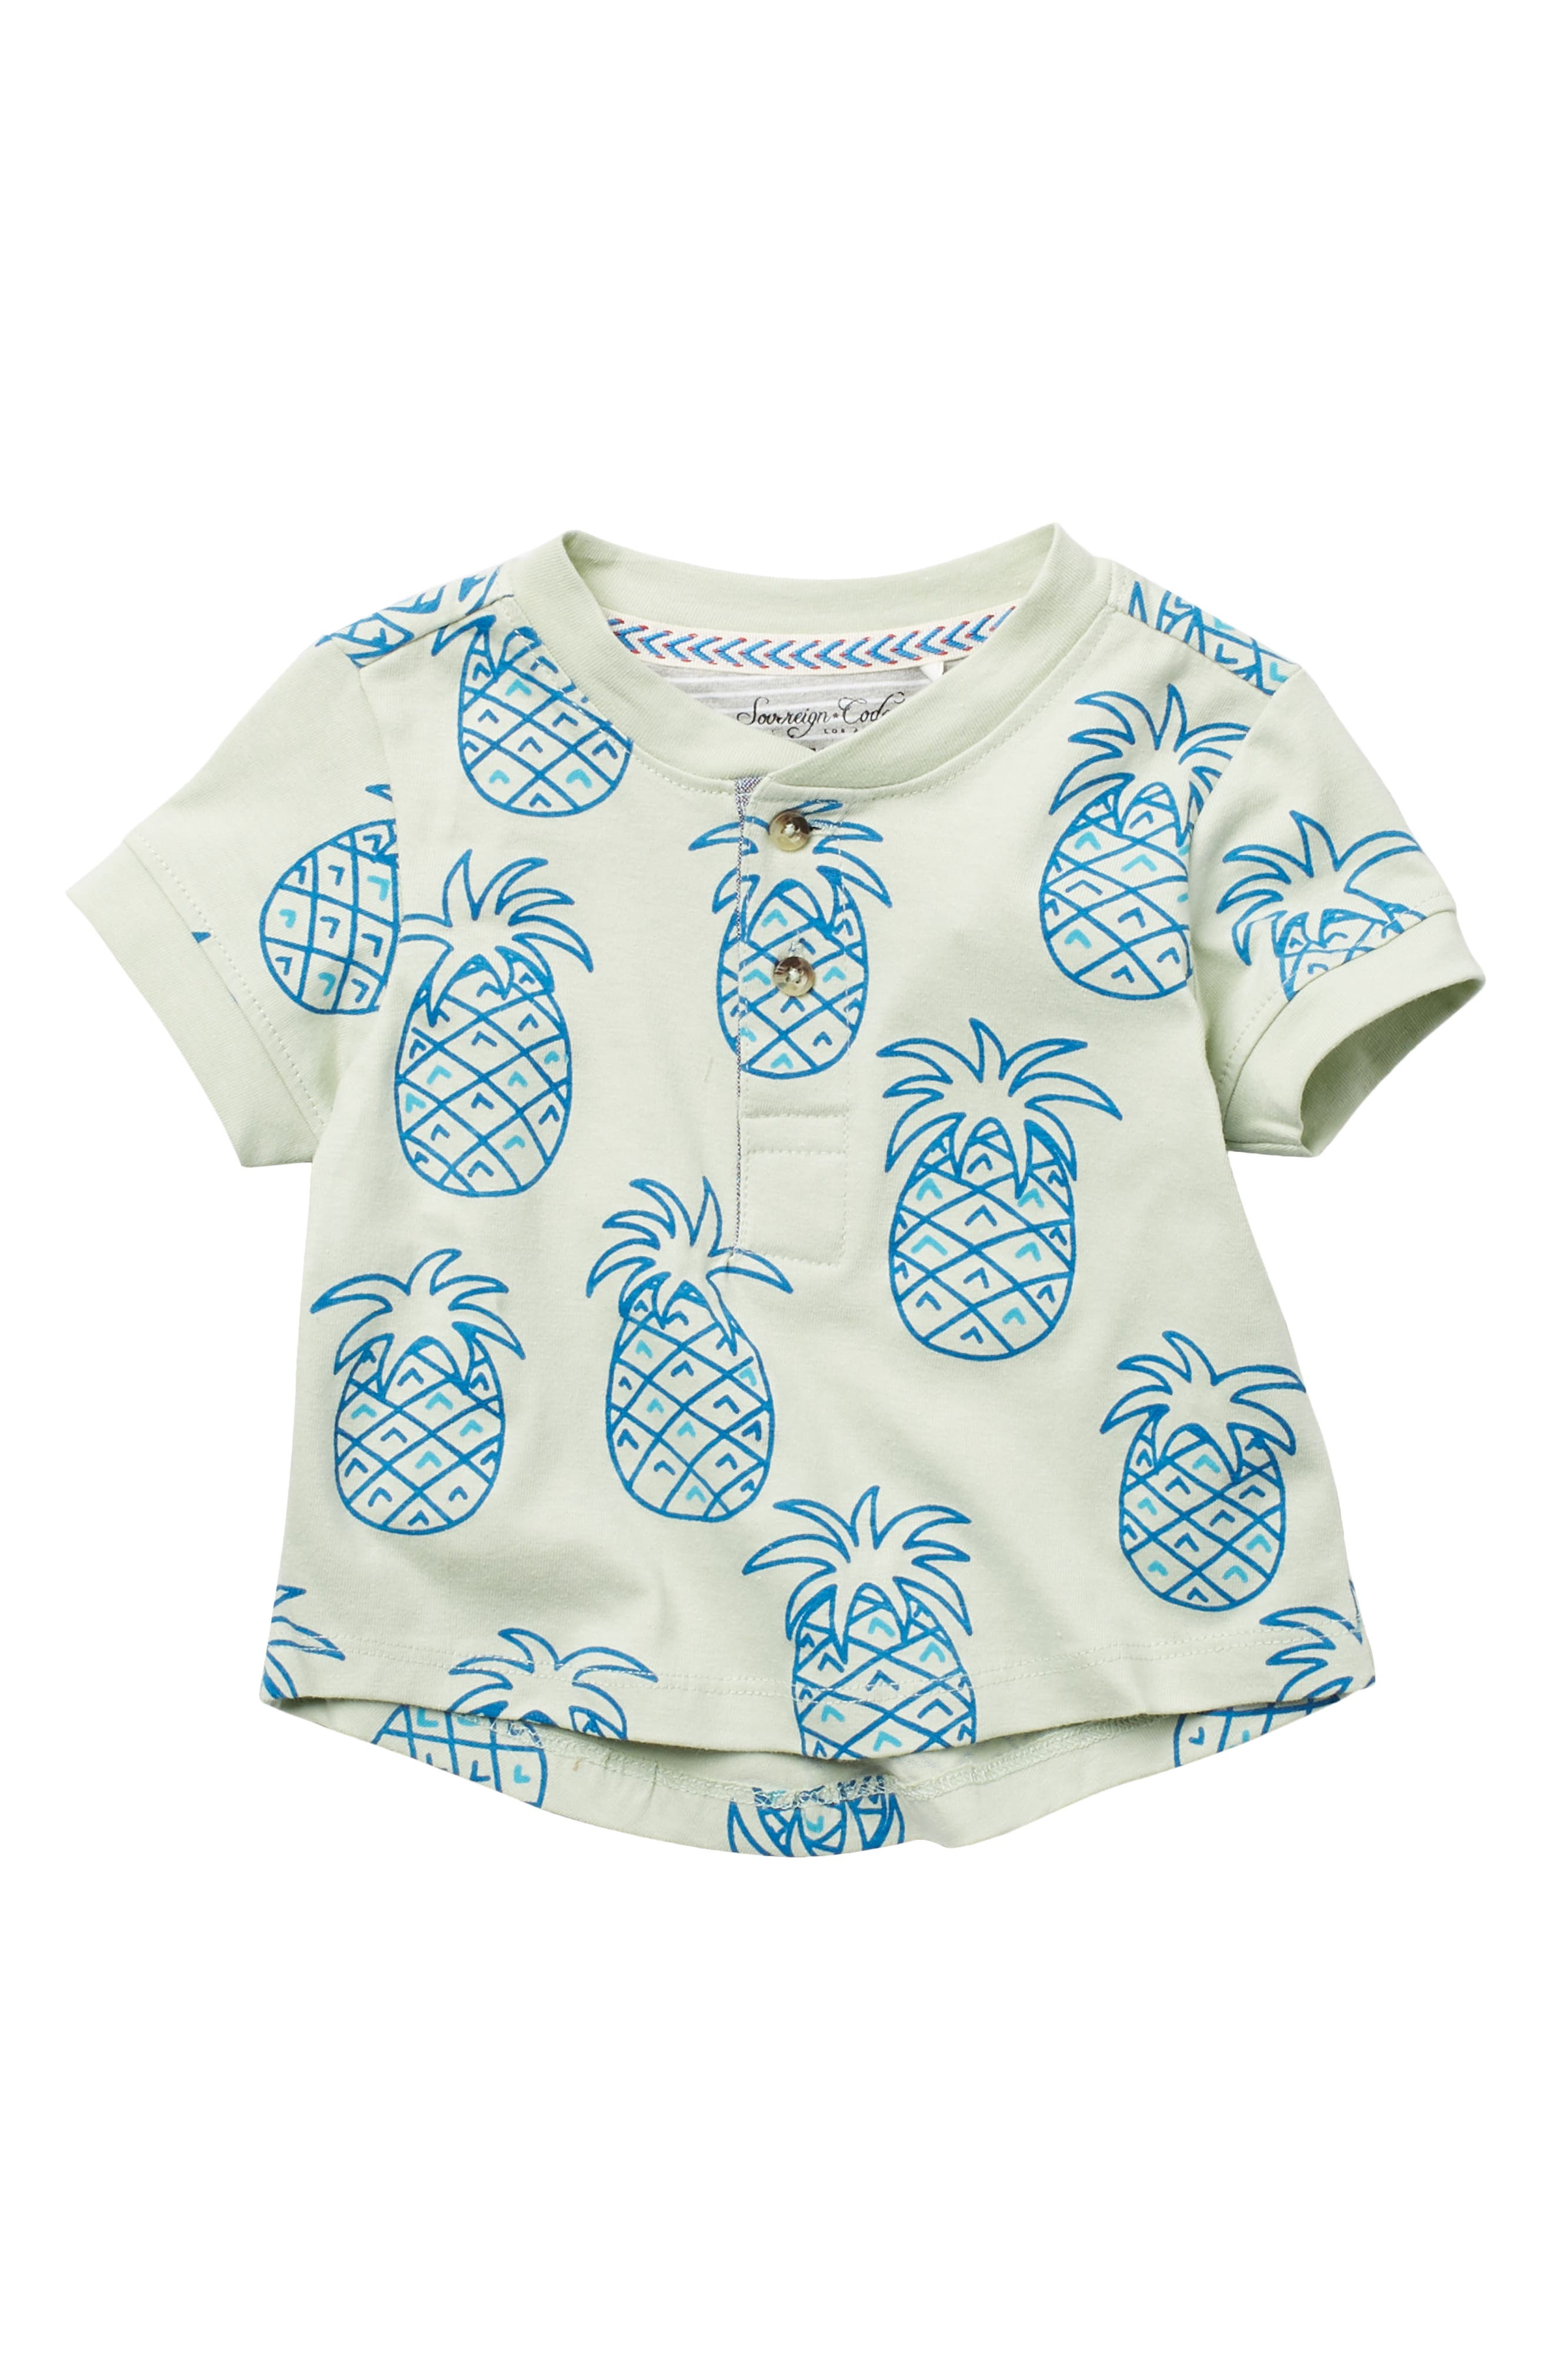 Image of Sovereign Code Champ Pineapple Print Top